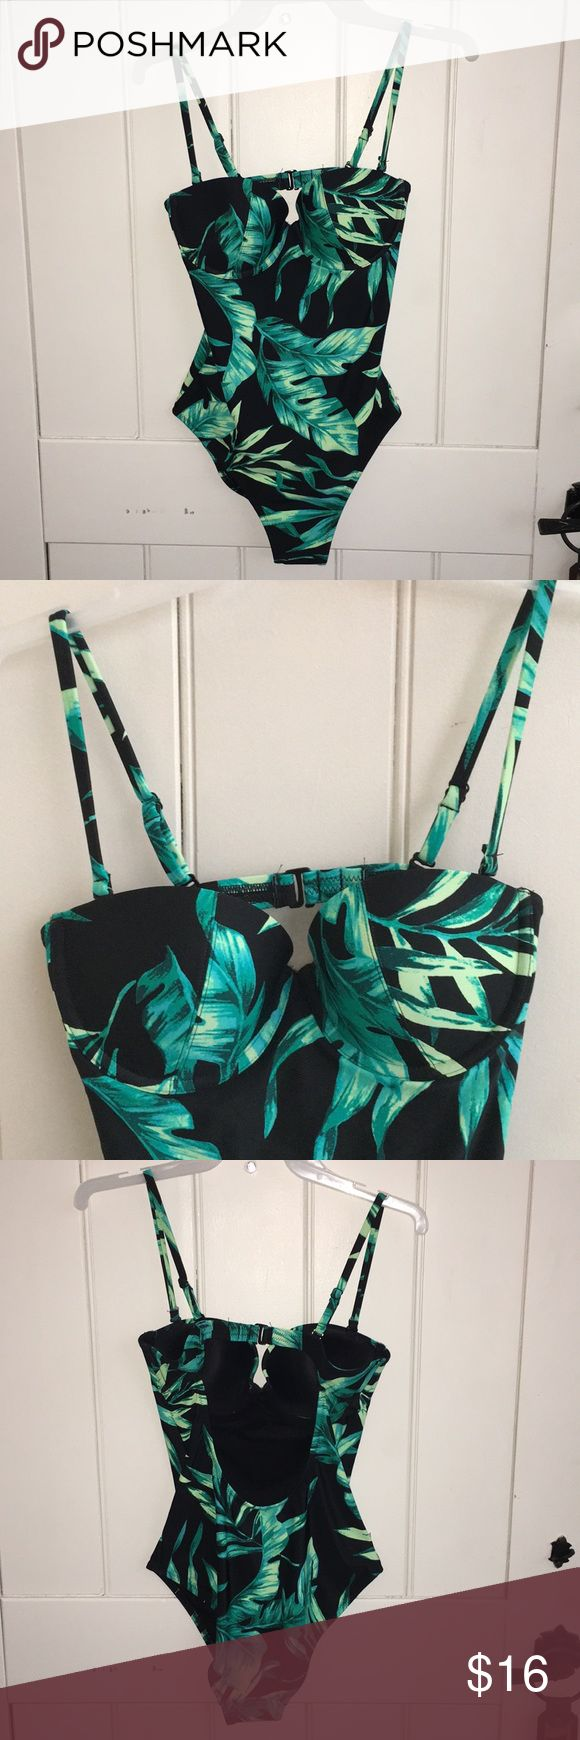 NWT Old Navy palm print one piece swimsuit S/P Size small petite. Never worn. Underwire molded cups/lightly padded for form. Detachable and adjustable straps. Scoop back. Old Navy Swim One Pieces